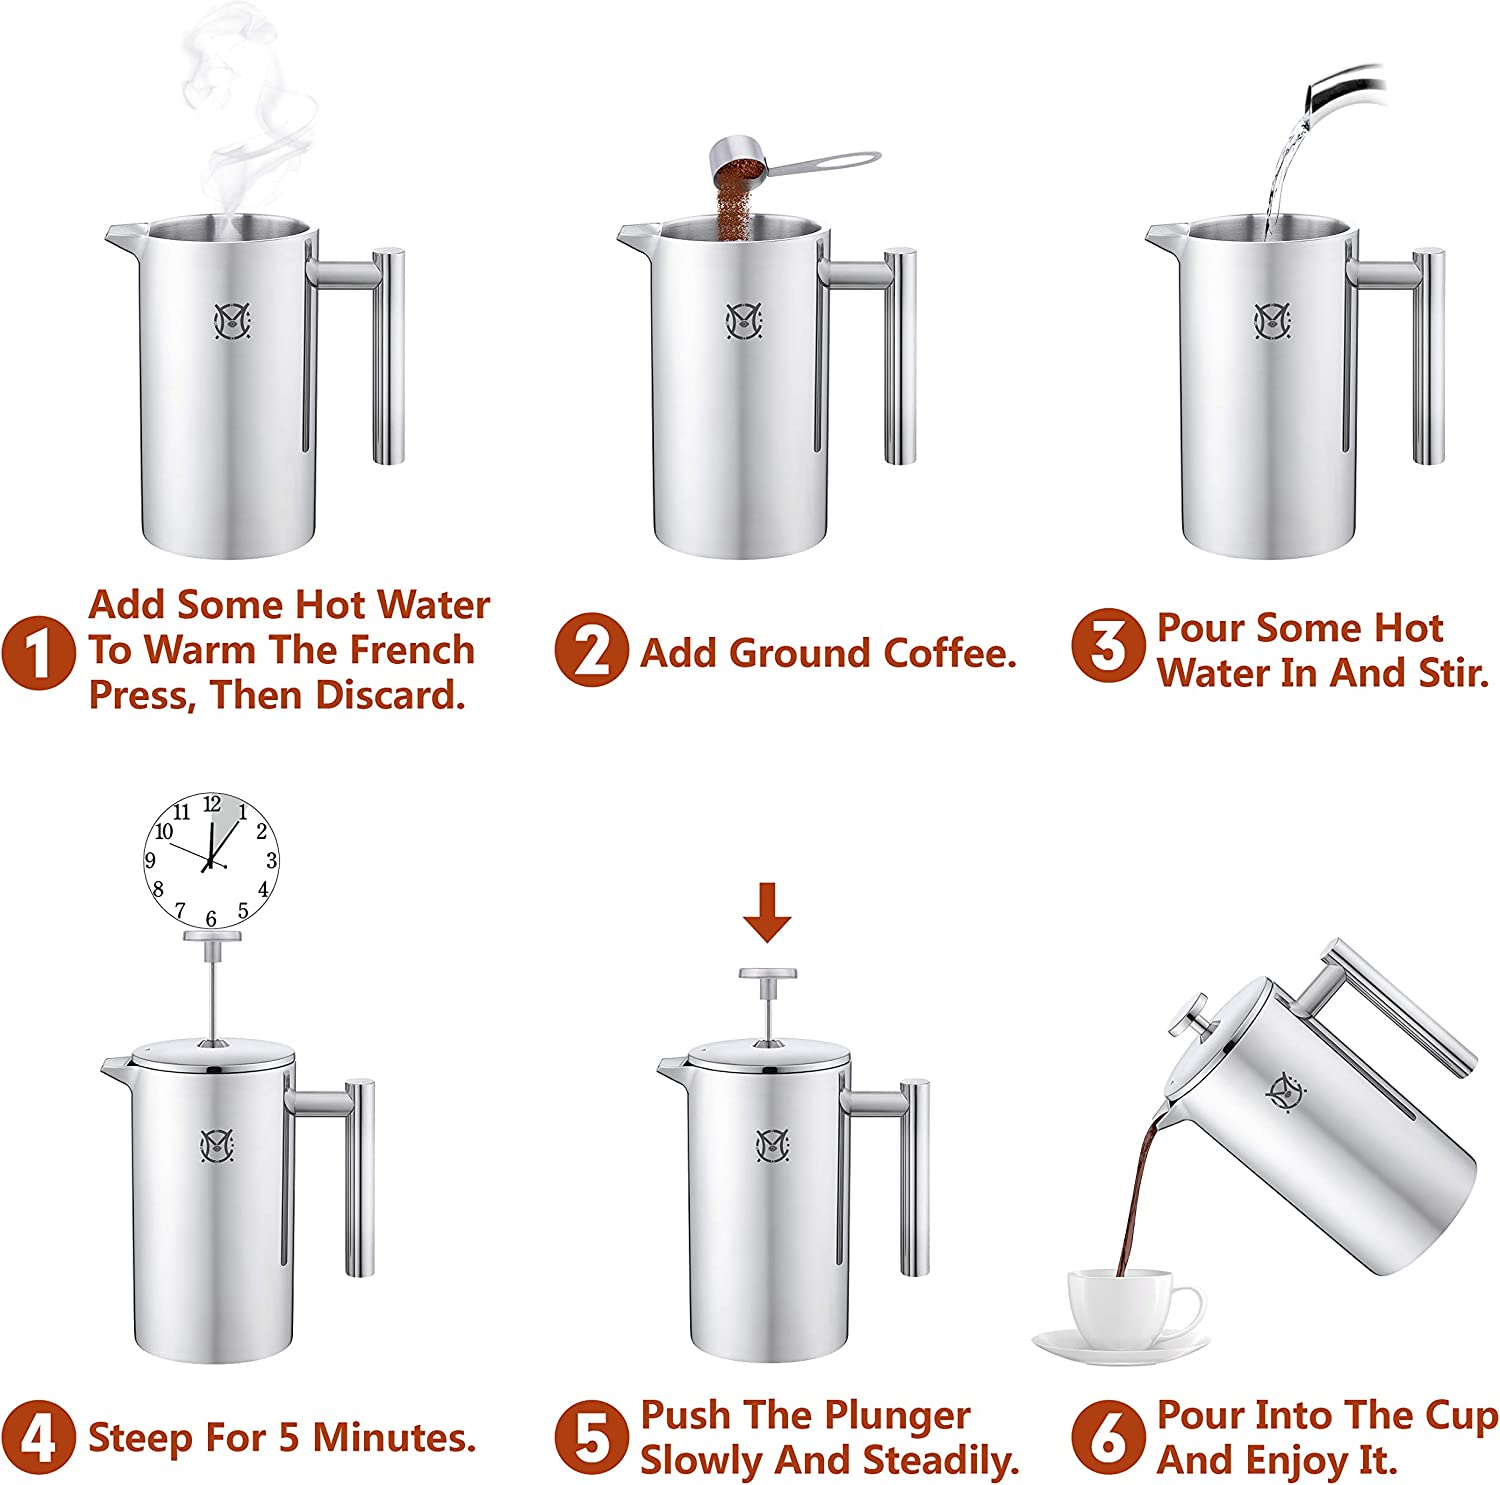 Stainless Steel Cafeteria Double Walled Cafetiere 34oz//1L Large 3 4 Cups Magicaf/é French Press Coffee Maker